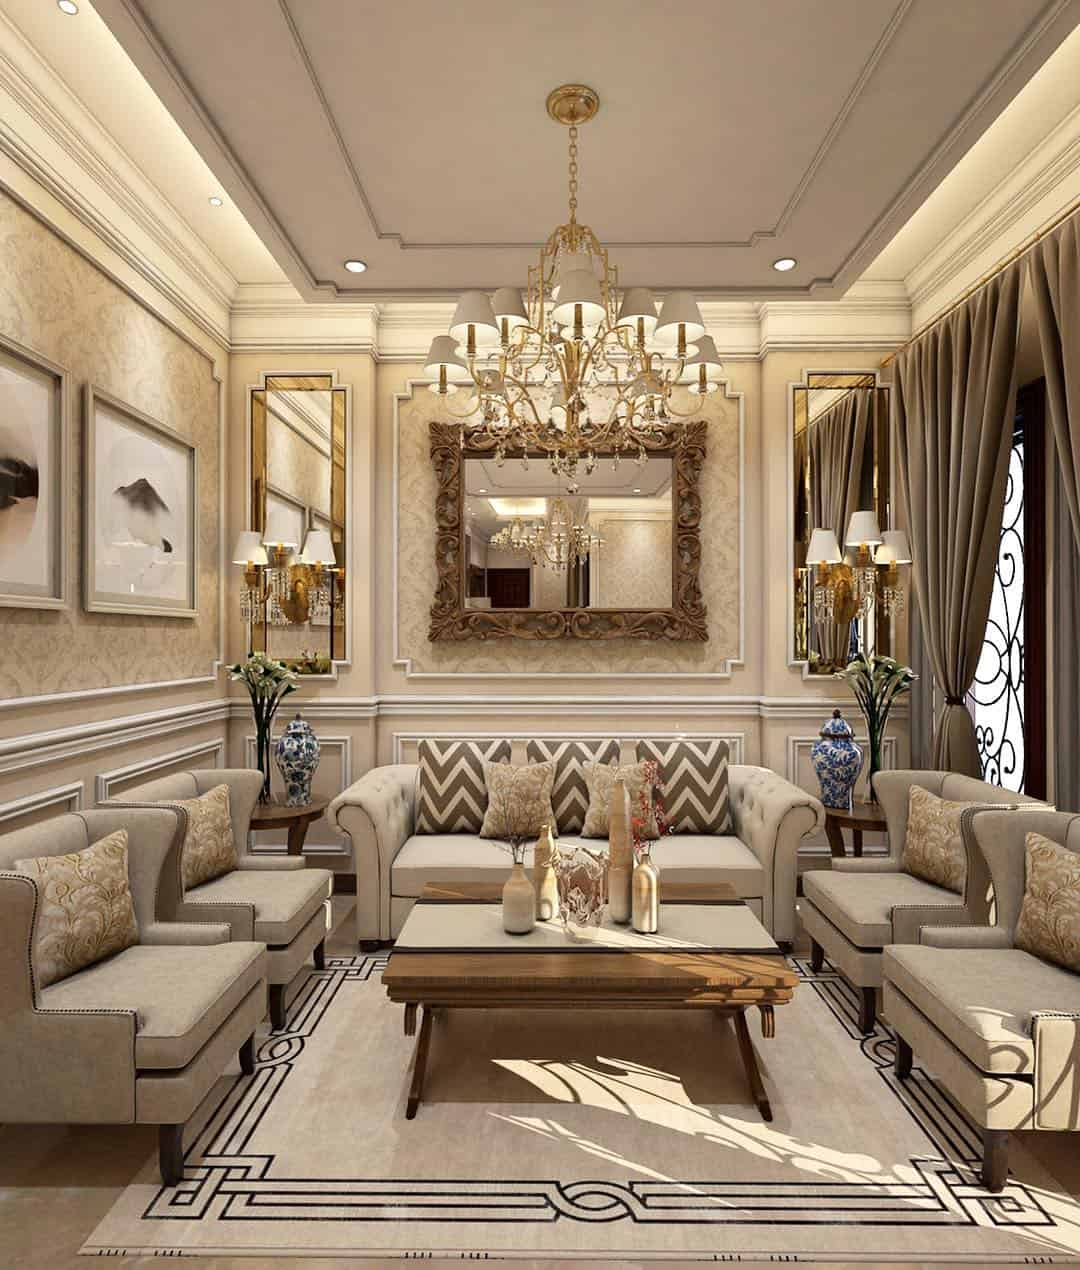 Top 15 Interior Design Trends 2021 Tips For Ultra Harmonic Decor